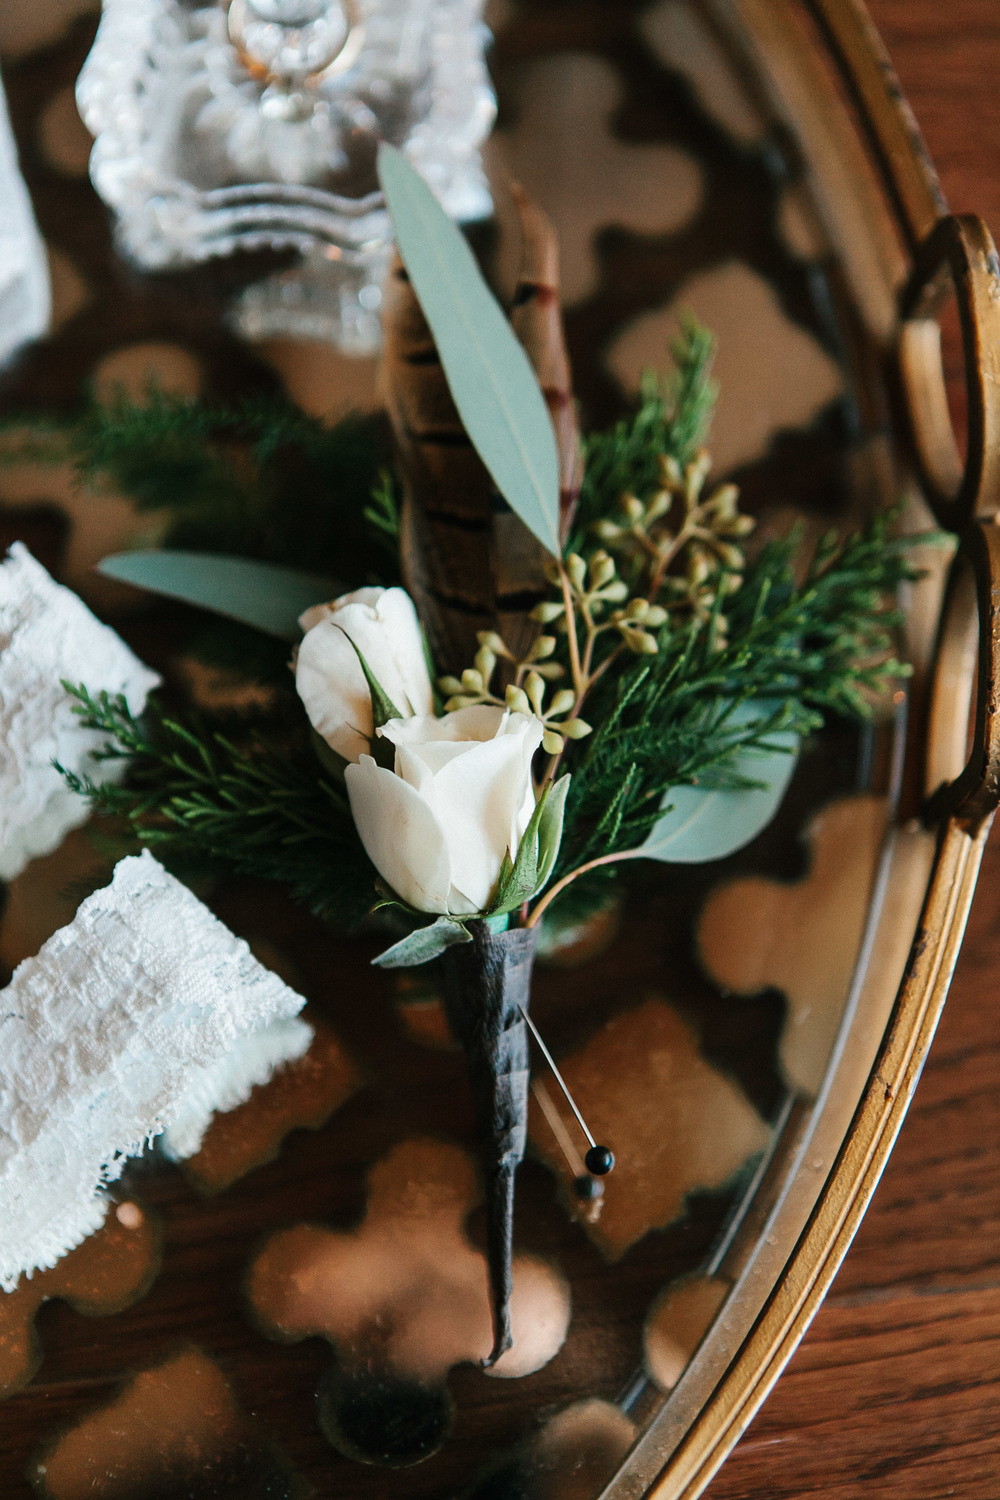 Pheasant feather boutonniere winter wedding in Stillmore, GA by Mark Williams Studio